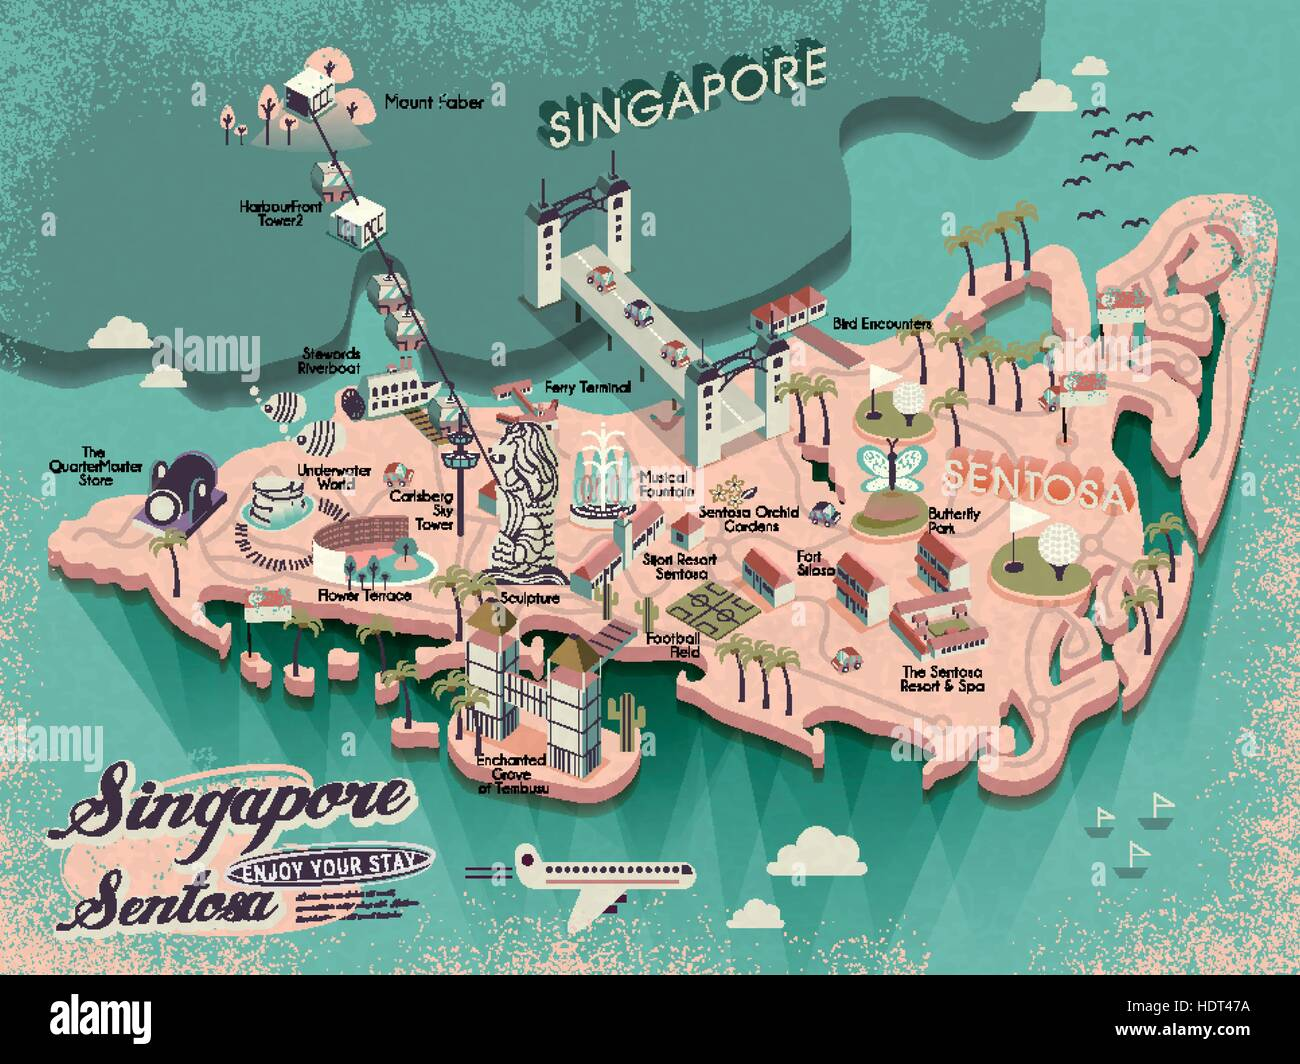 lovely sentosa must see attractions travel map in 3d isometric design stock image